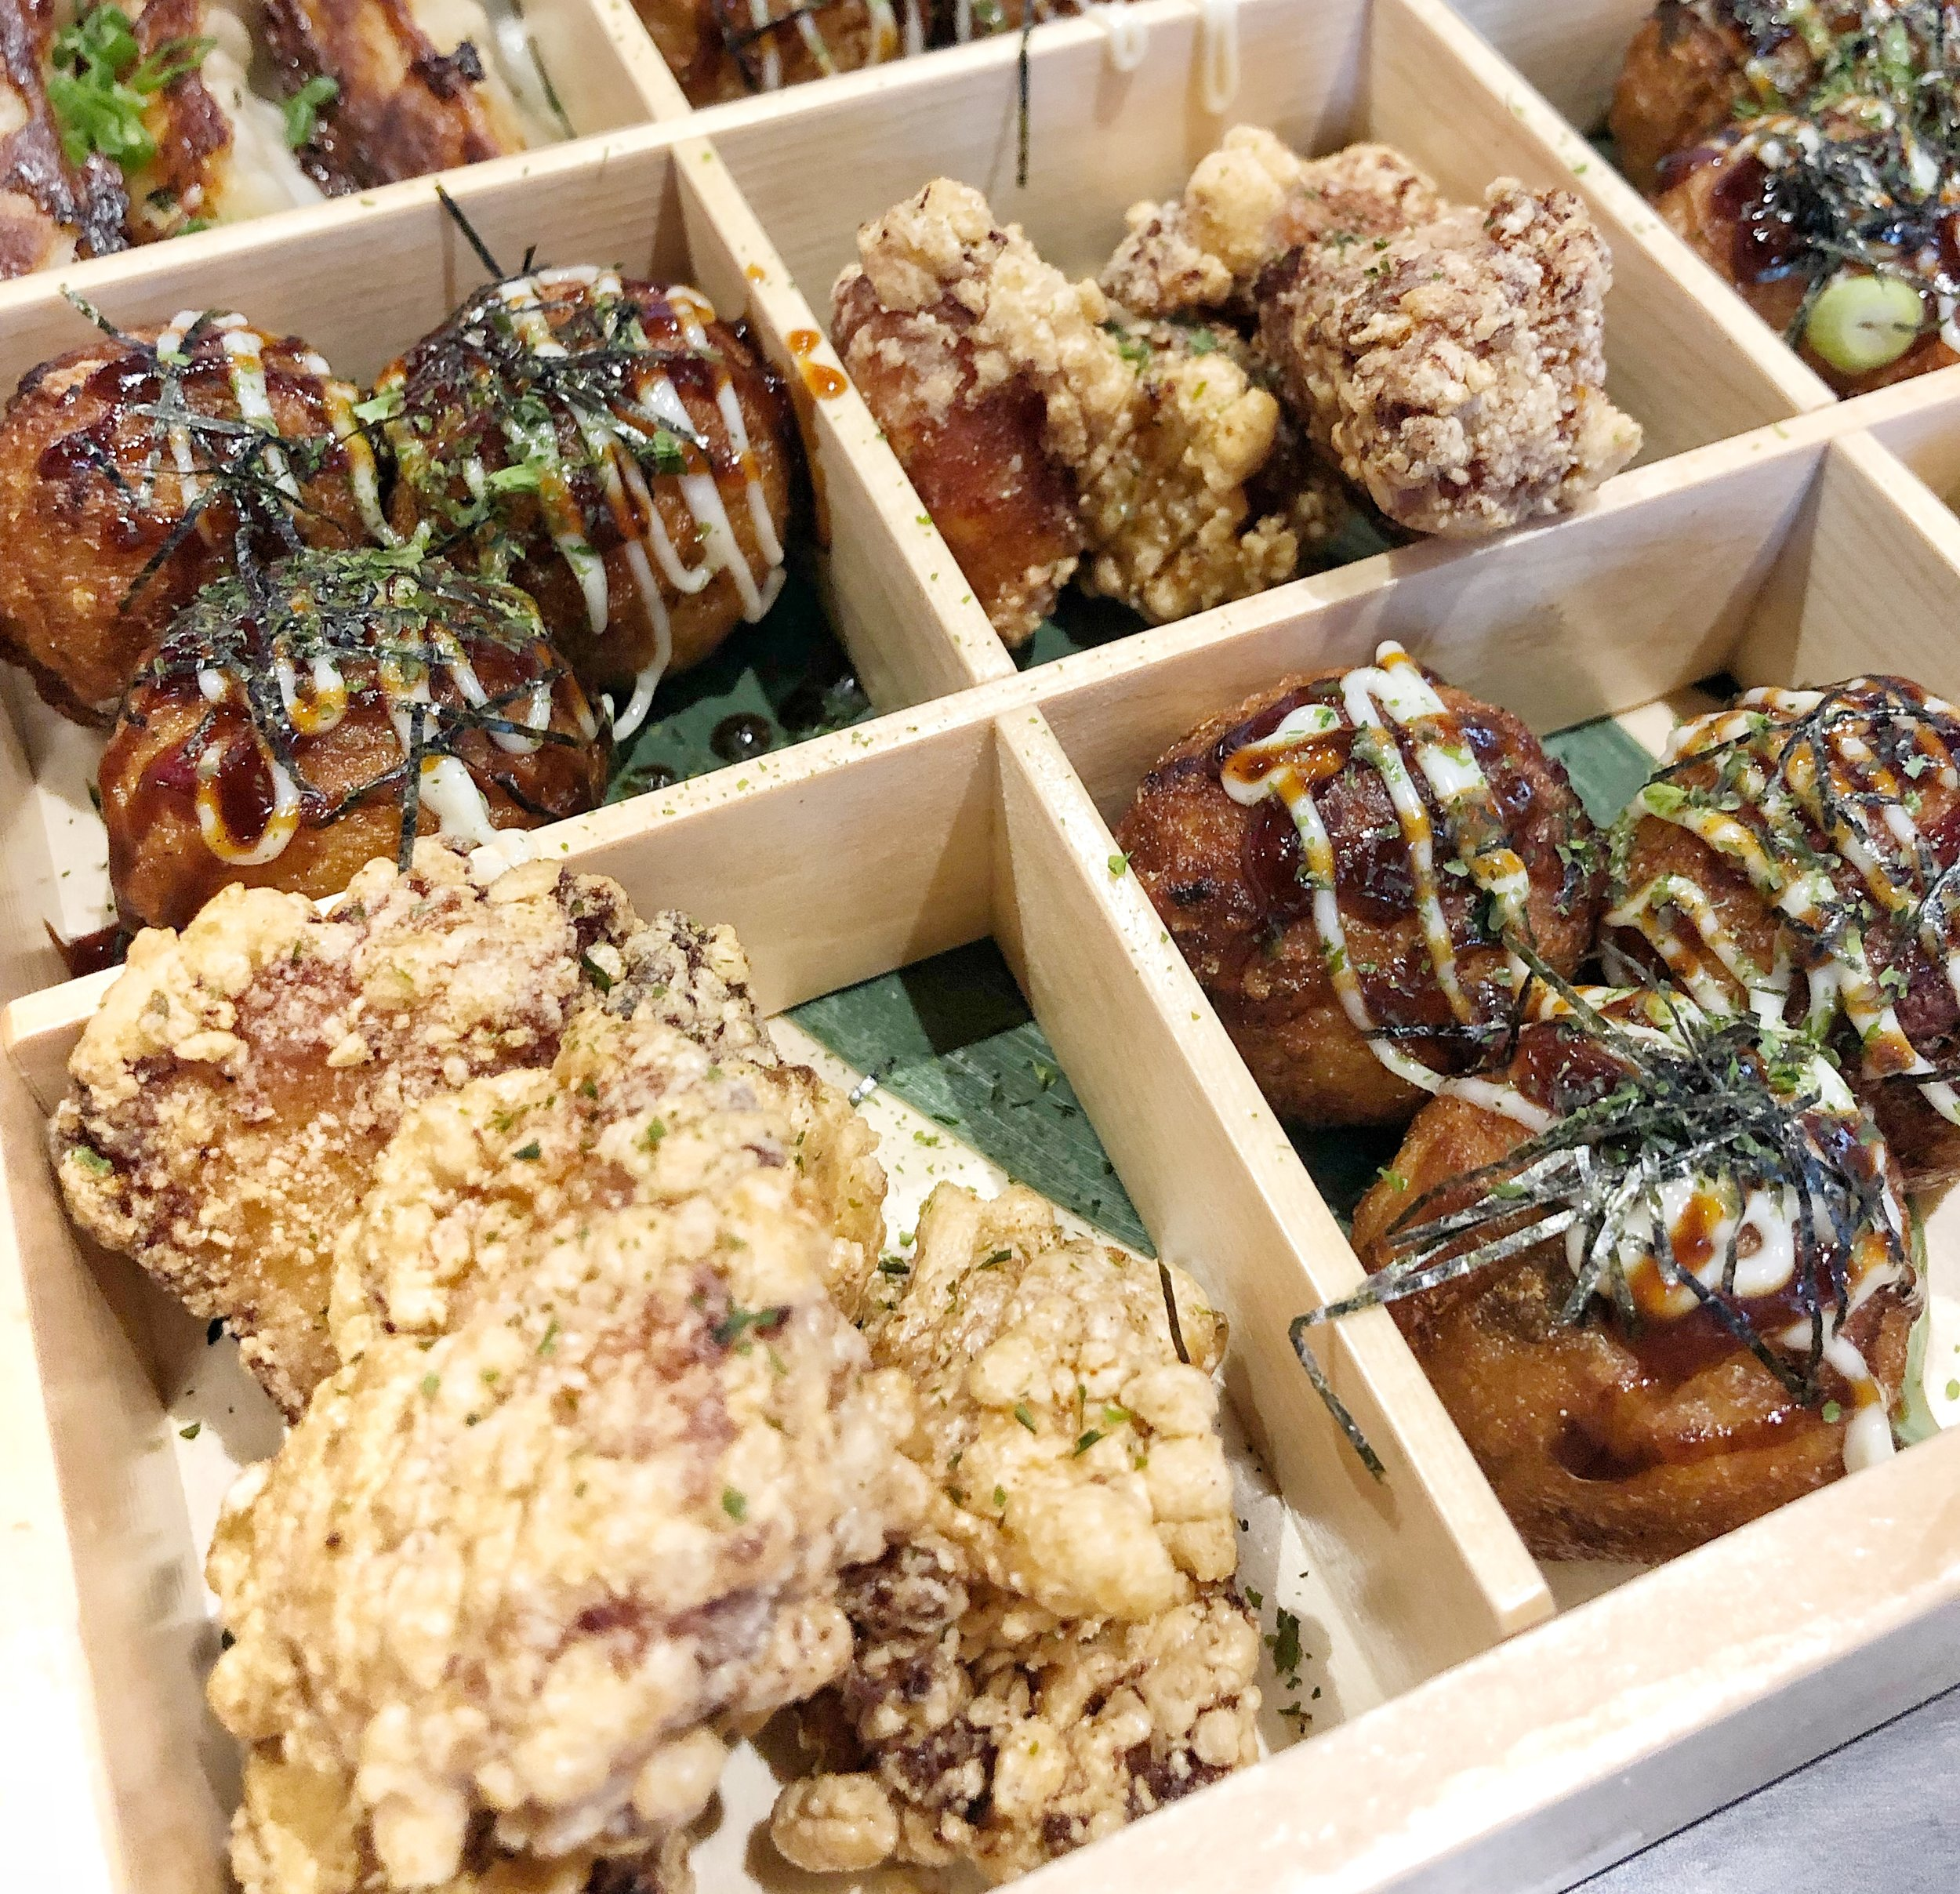 Karaage & Takoyaki - Karaage is essentially a delicious Japanese chicken nugget, and takoyaki is basically an octopus hush puppy. If you haven't had either of these, DO NOT PASS GO & RUN STRAIGHT TO YUME.